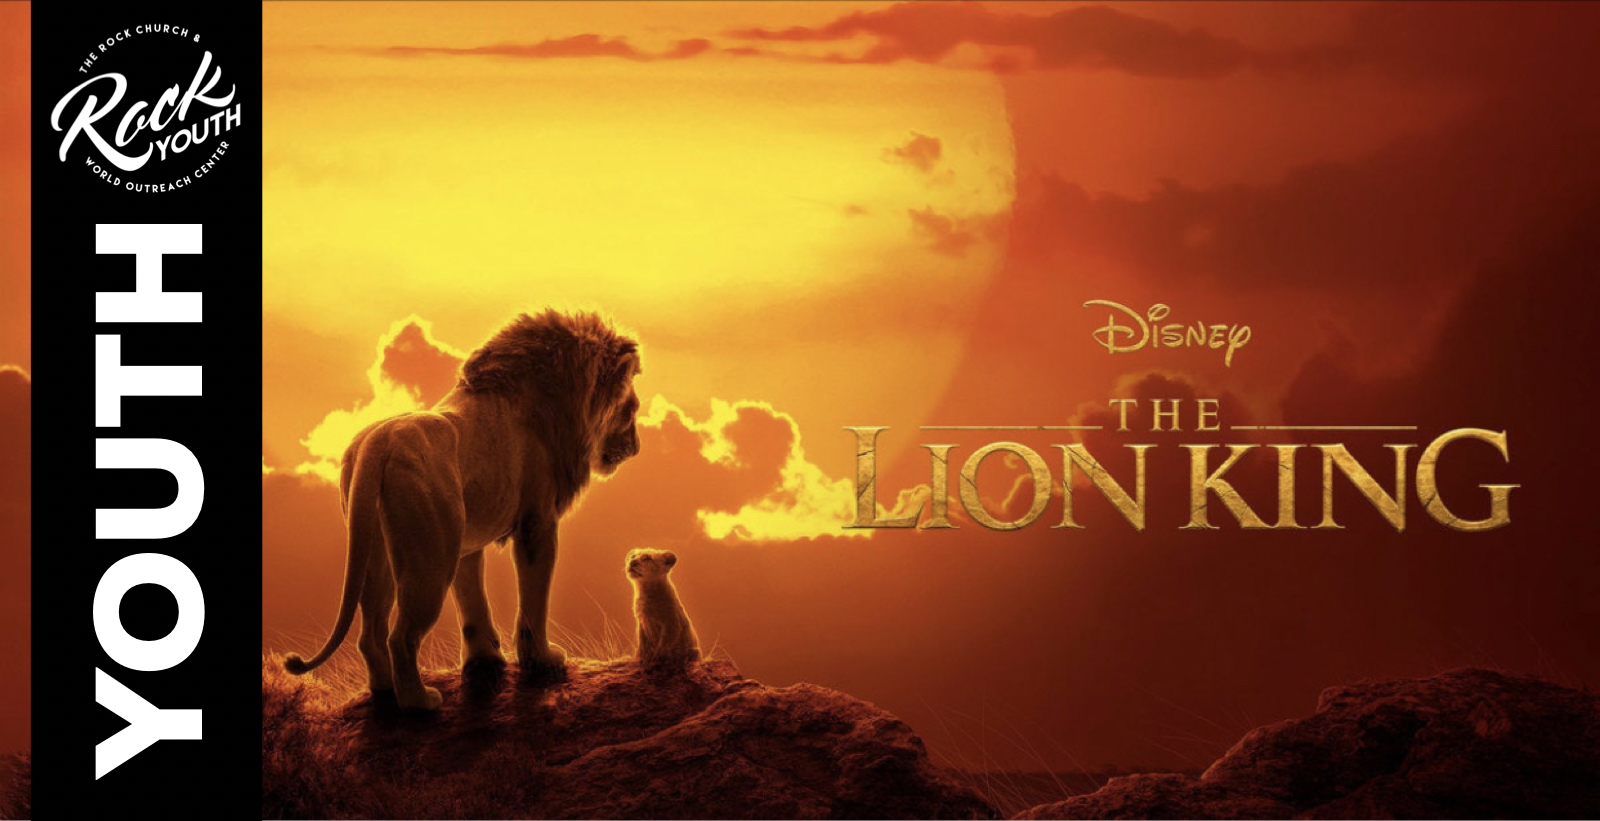 The Lion King - Harkins with The Rock Youth